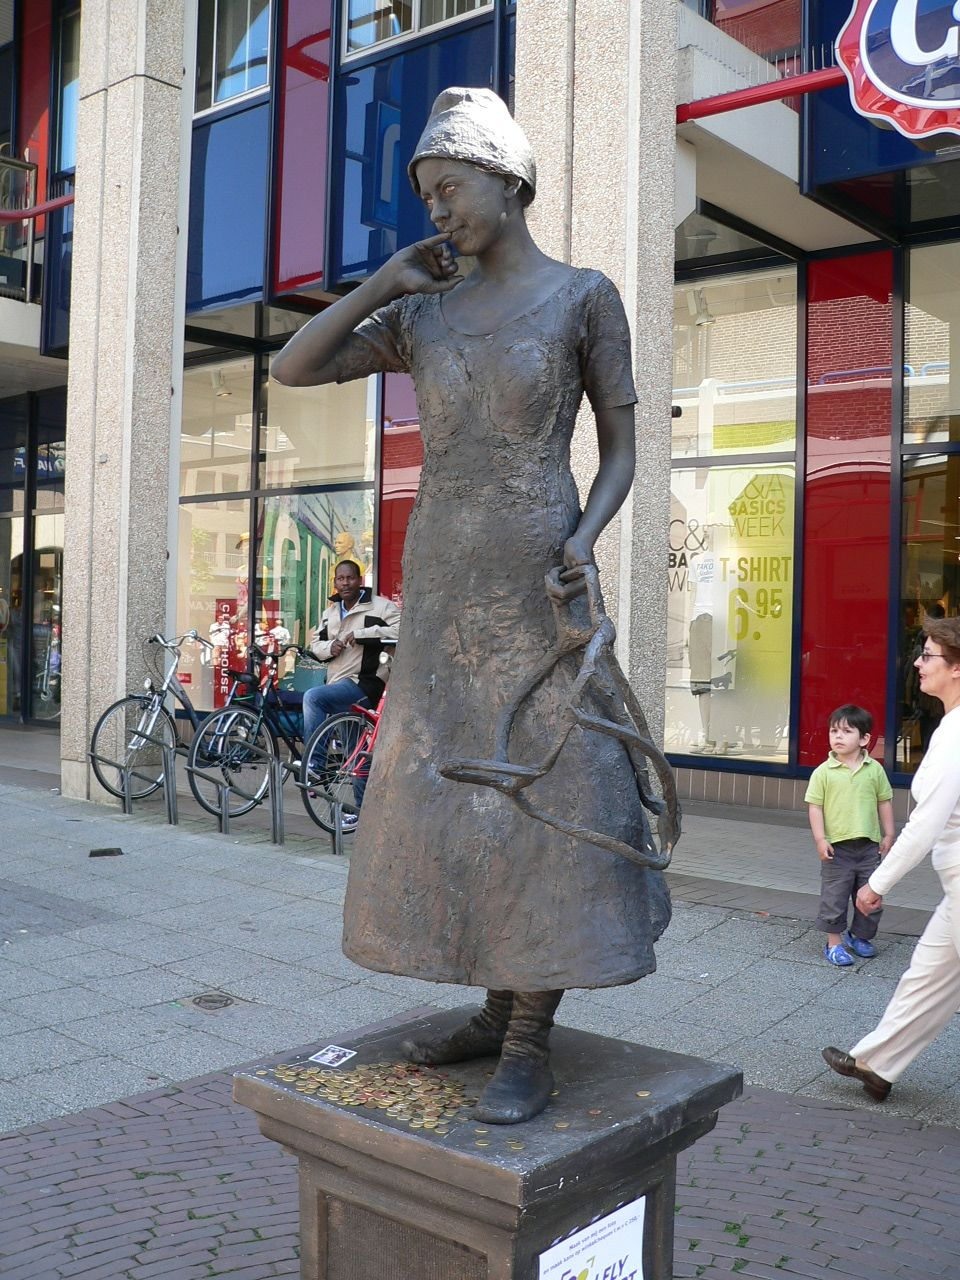 Pin by Taru Heinonen on Statues, mostly living